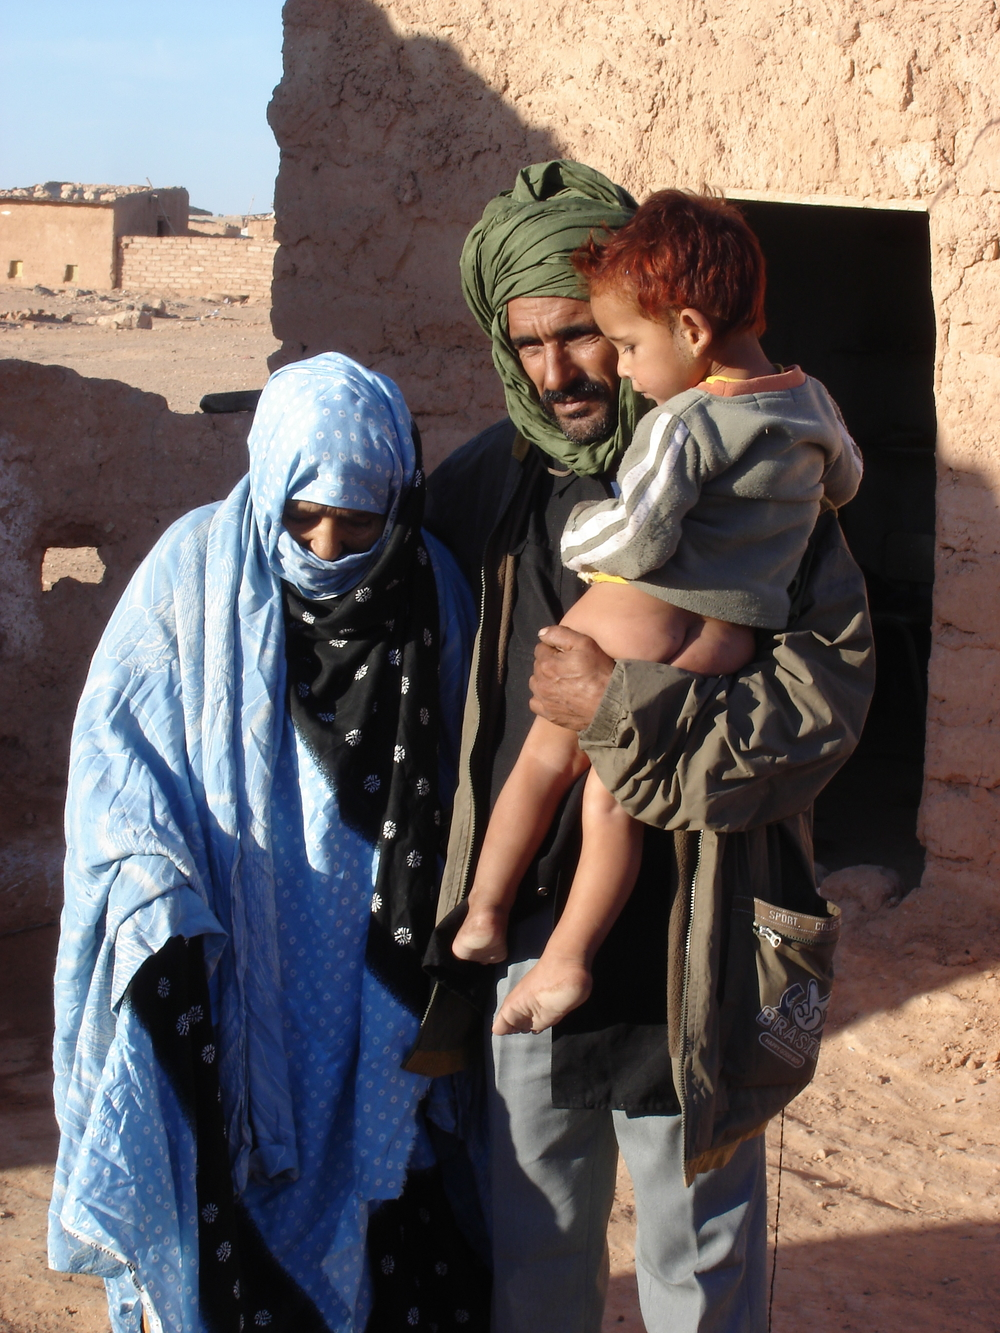 A man with his family, one of the Sahrawi people, Western Sahara, April 2007. The Sahrawi people are divided by minefields, army outposts and a manmade wall of sand more than 2,400 km long. There has been a long-standing dispute that pits the Moroccan gov